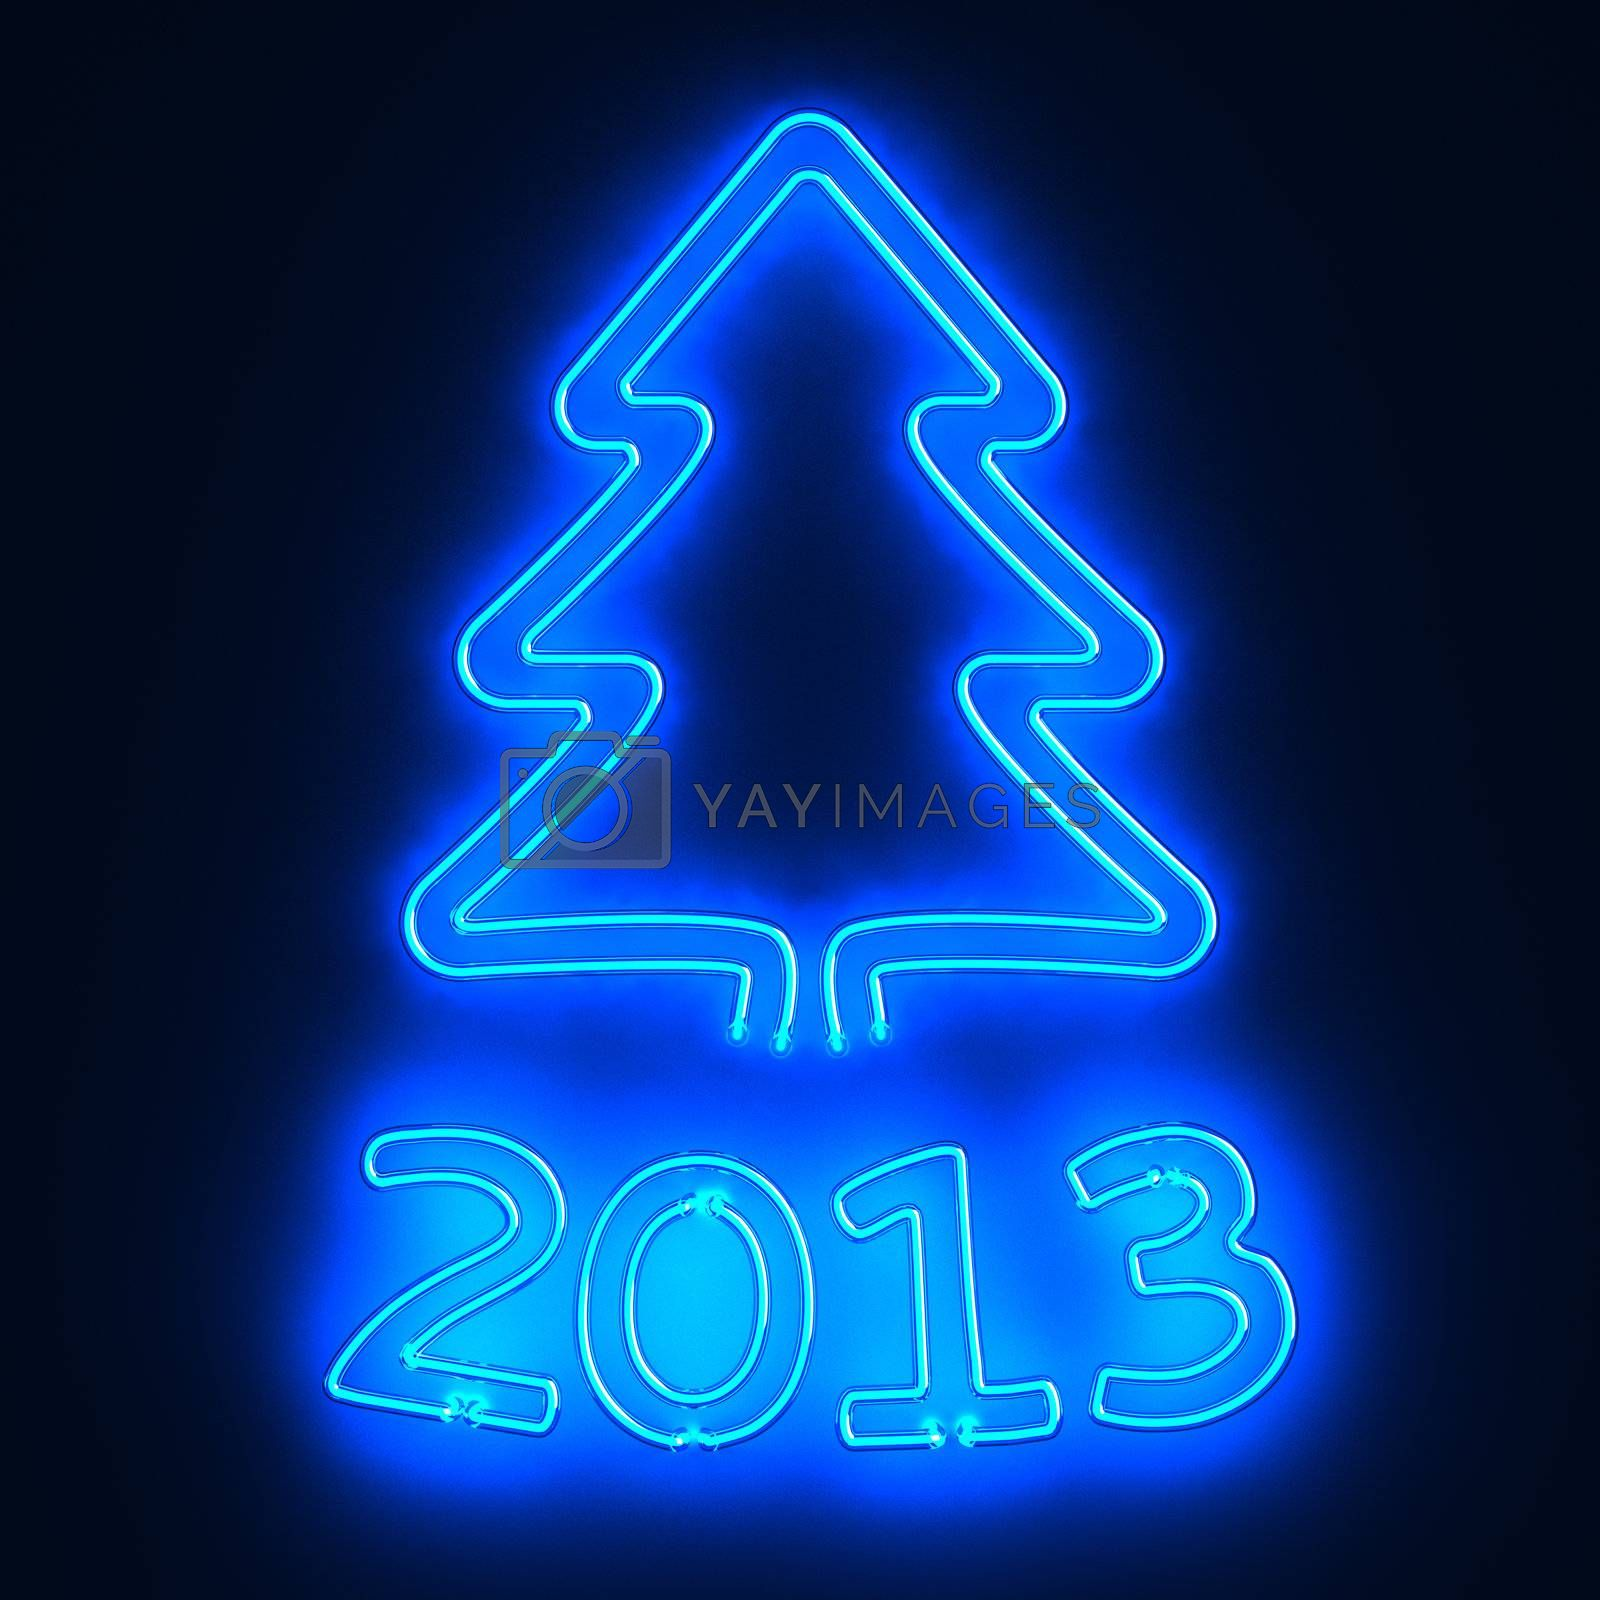 Glowing neon sign 2013 and christmas tree